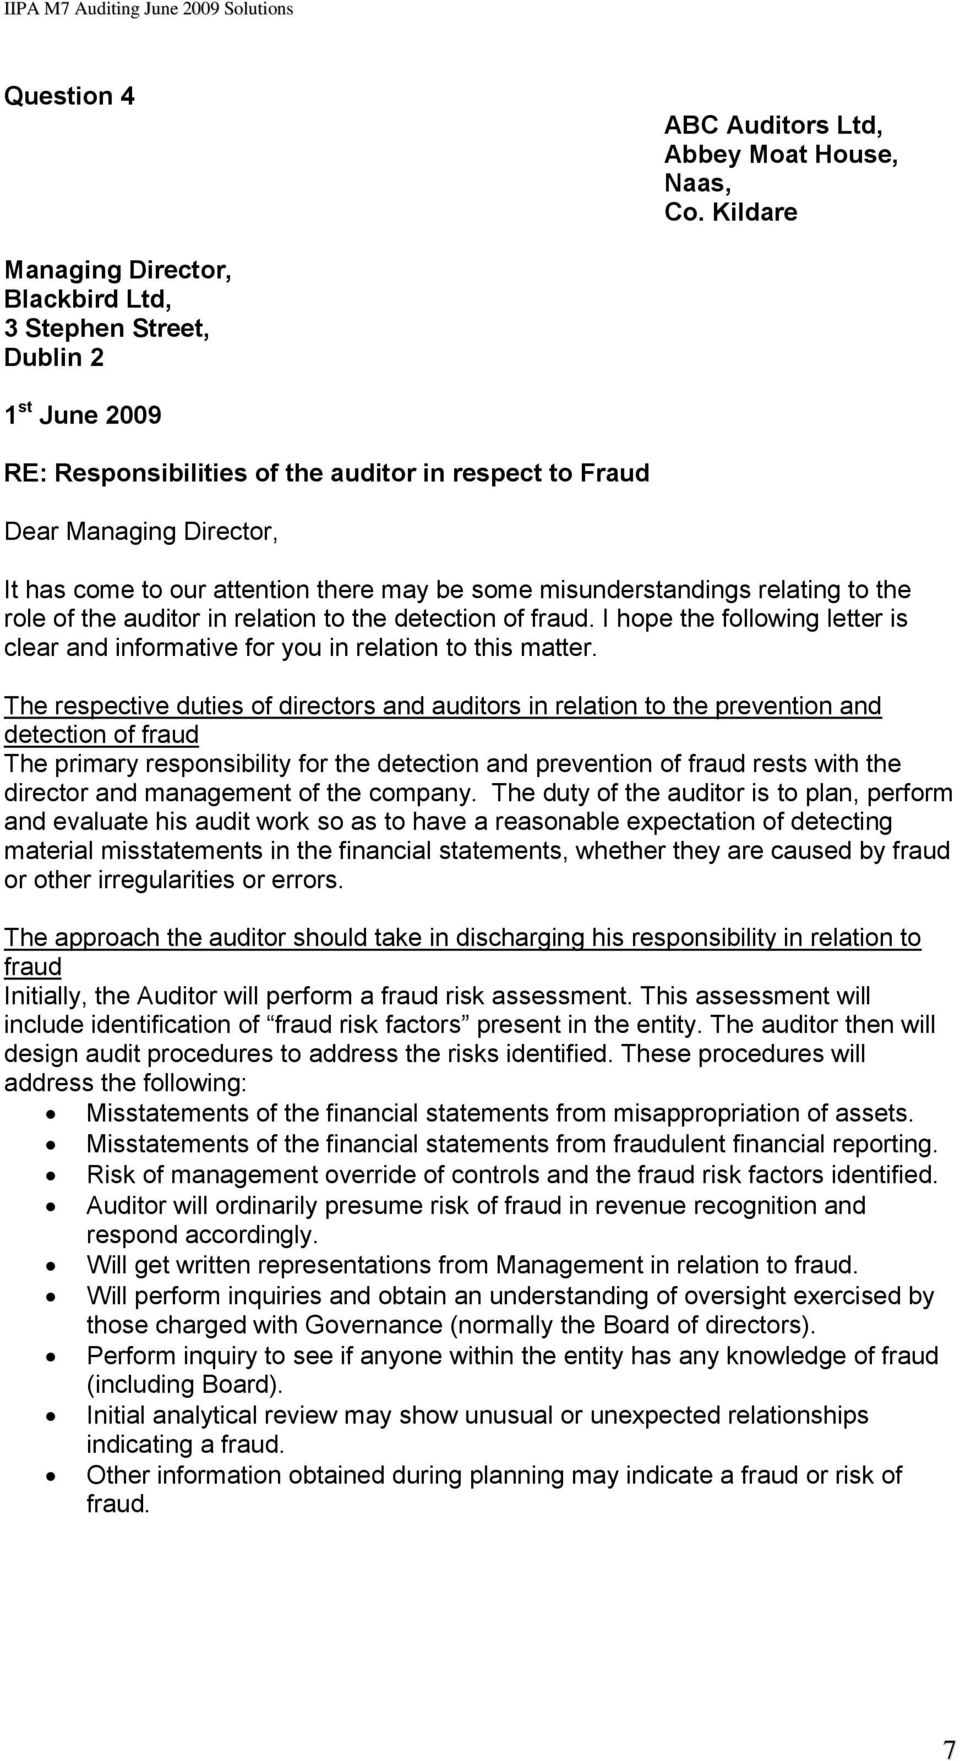 may be some misunderstandings relating to the role of the auditor in relation to the detection of fraud. I hope the following letter is clear and informative for you in relation to this matter.